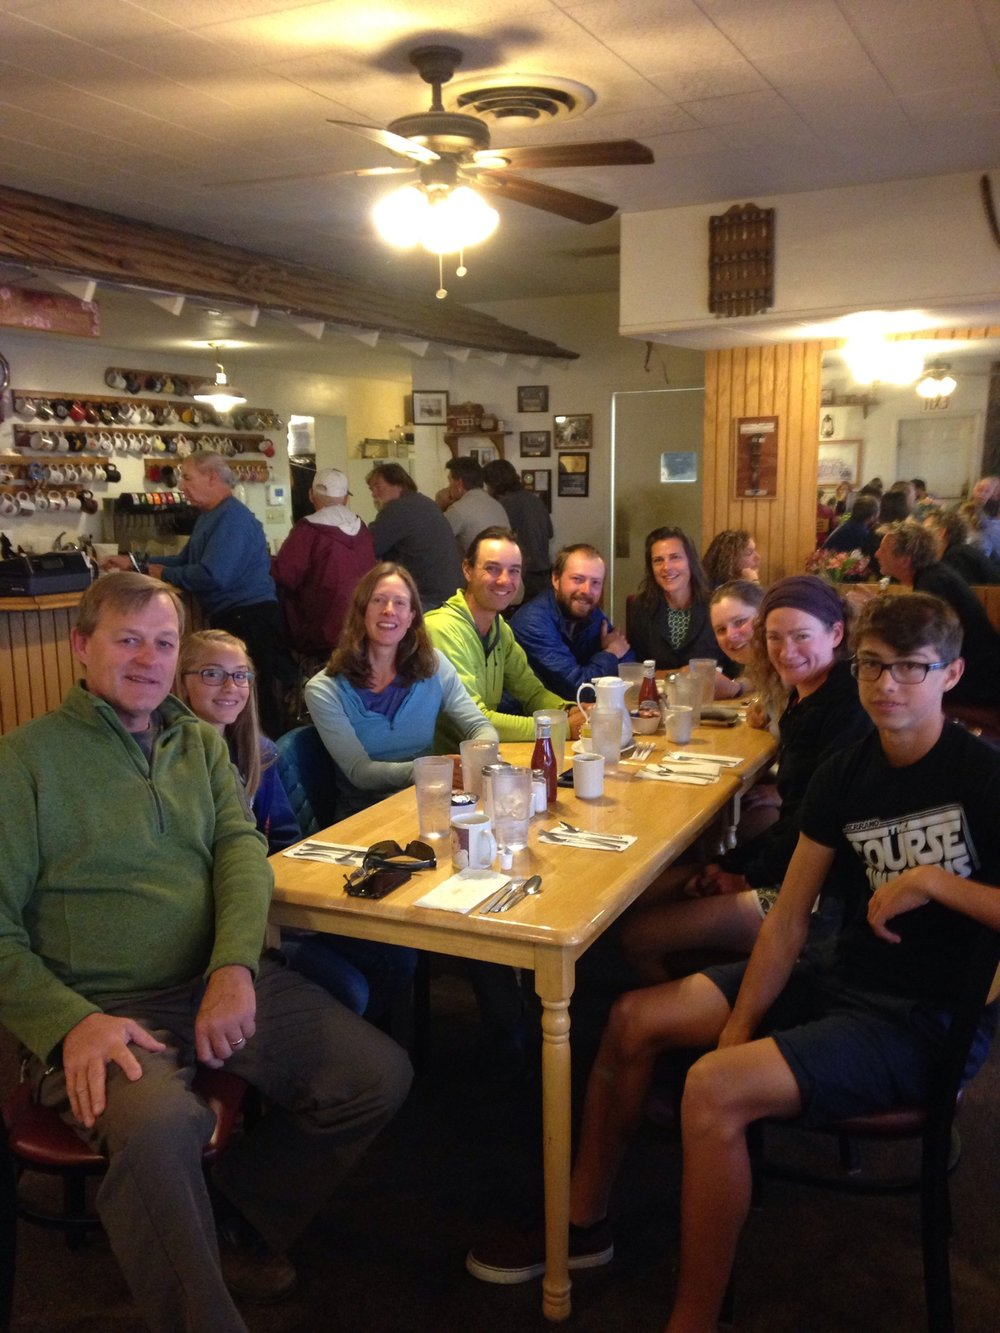 5 thru-hikers and a host family of 4 makes for a big table at Rick's Roadhouse.